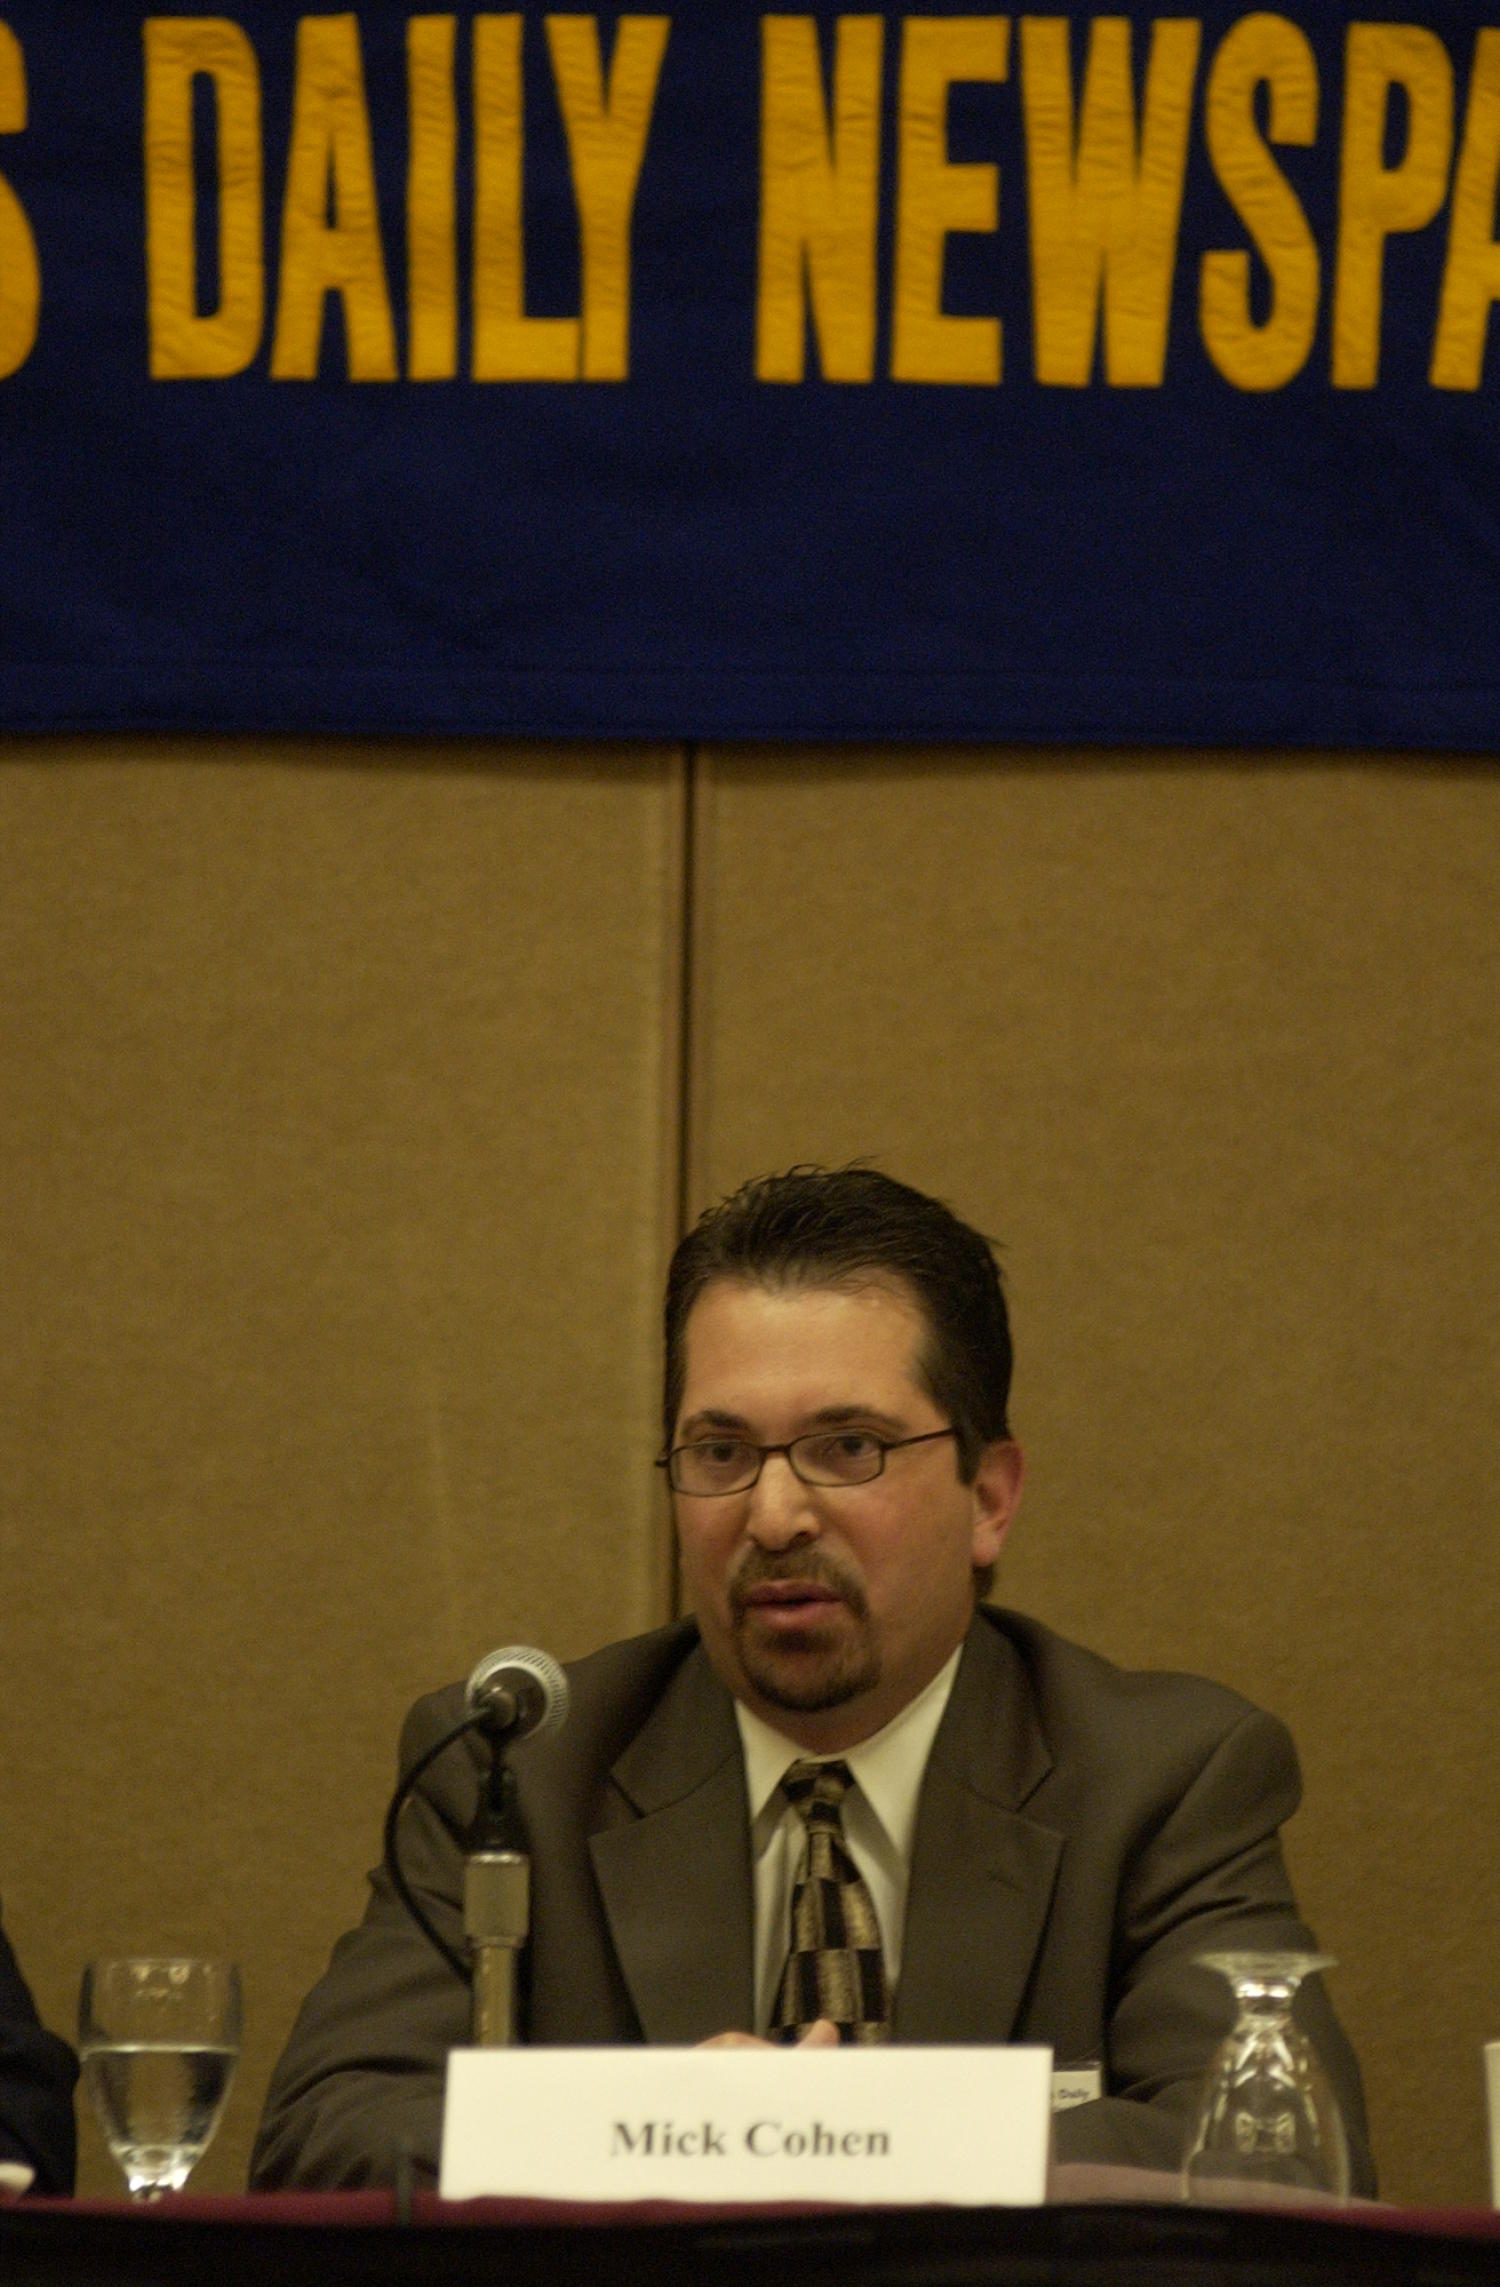 [Mick Cohen at the TDNA conference], Photograph of Mick Cohen in attendance at the 2004 Texas Daily News Association annual conference held in Corpus Christi. Cohen is seen sitting behind a table and sitting in front of a microphone as he is a guest speaker on a panel.,